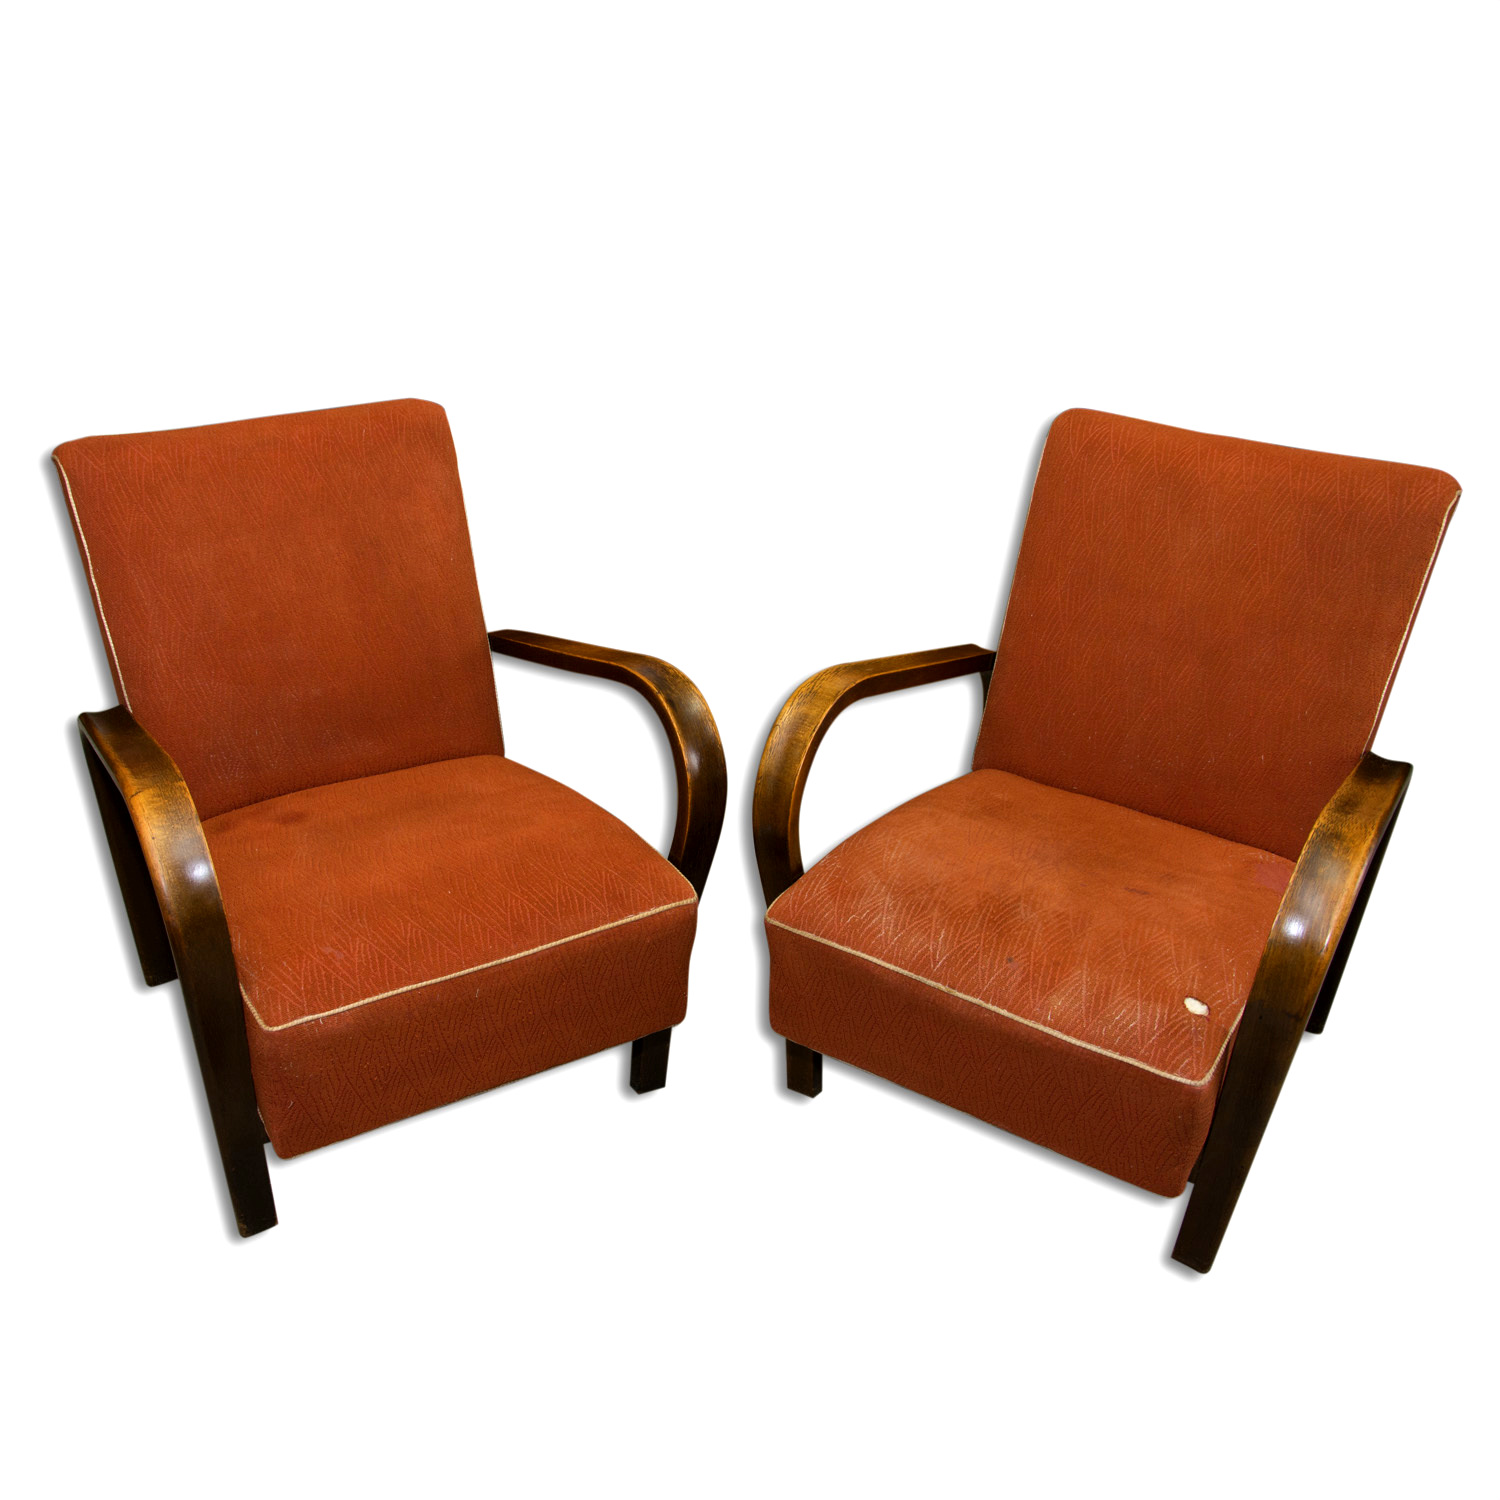 Awe Inspiring Jindrich Halabala Pair Of Art Deco Bentwood Armchairs 1940 Spiritservingveterans Wood Chair Design Ideas Spiritservingveteransorg